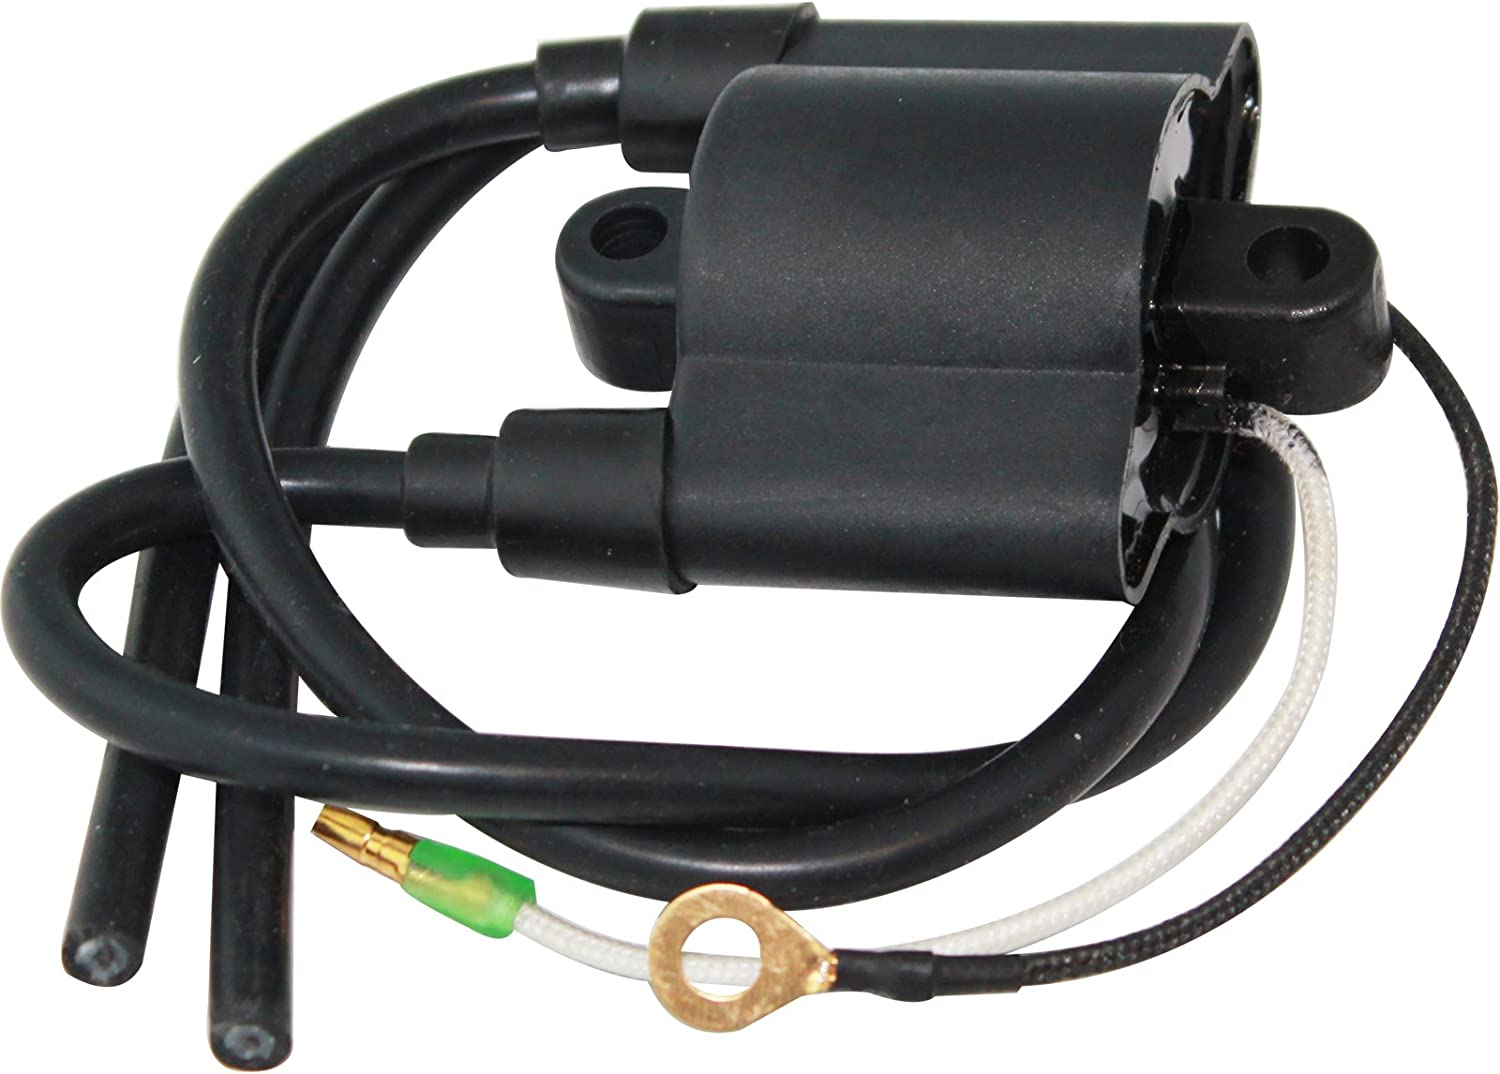 339-804271T IGNITION COIL FOR MERCURY /& MARINER OUTBOARDS 4-STROKE 804271T